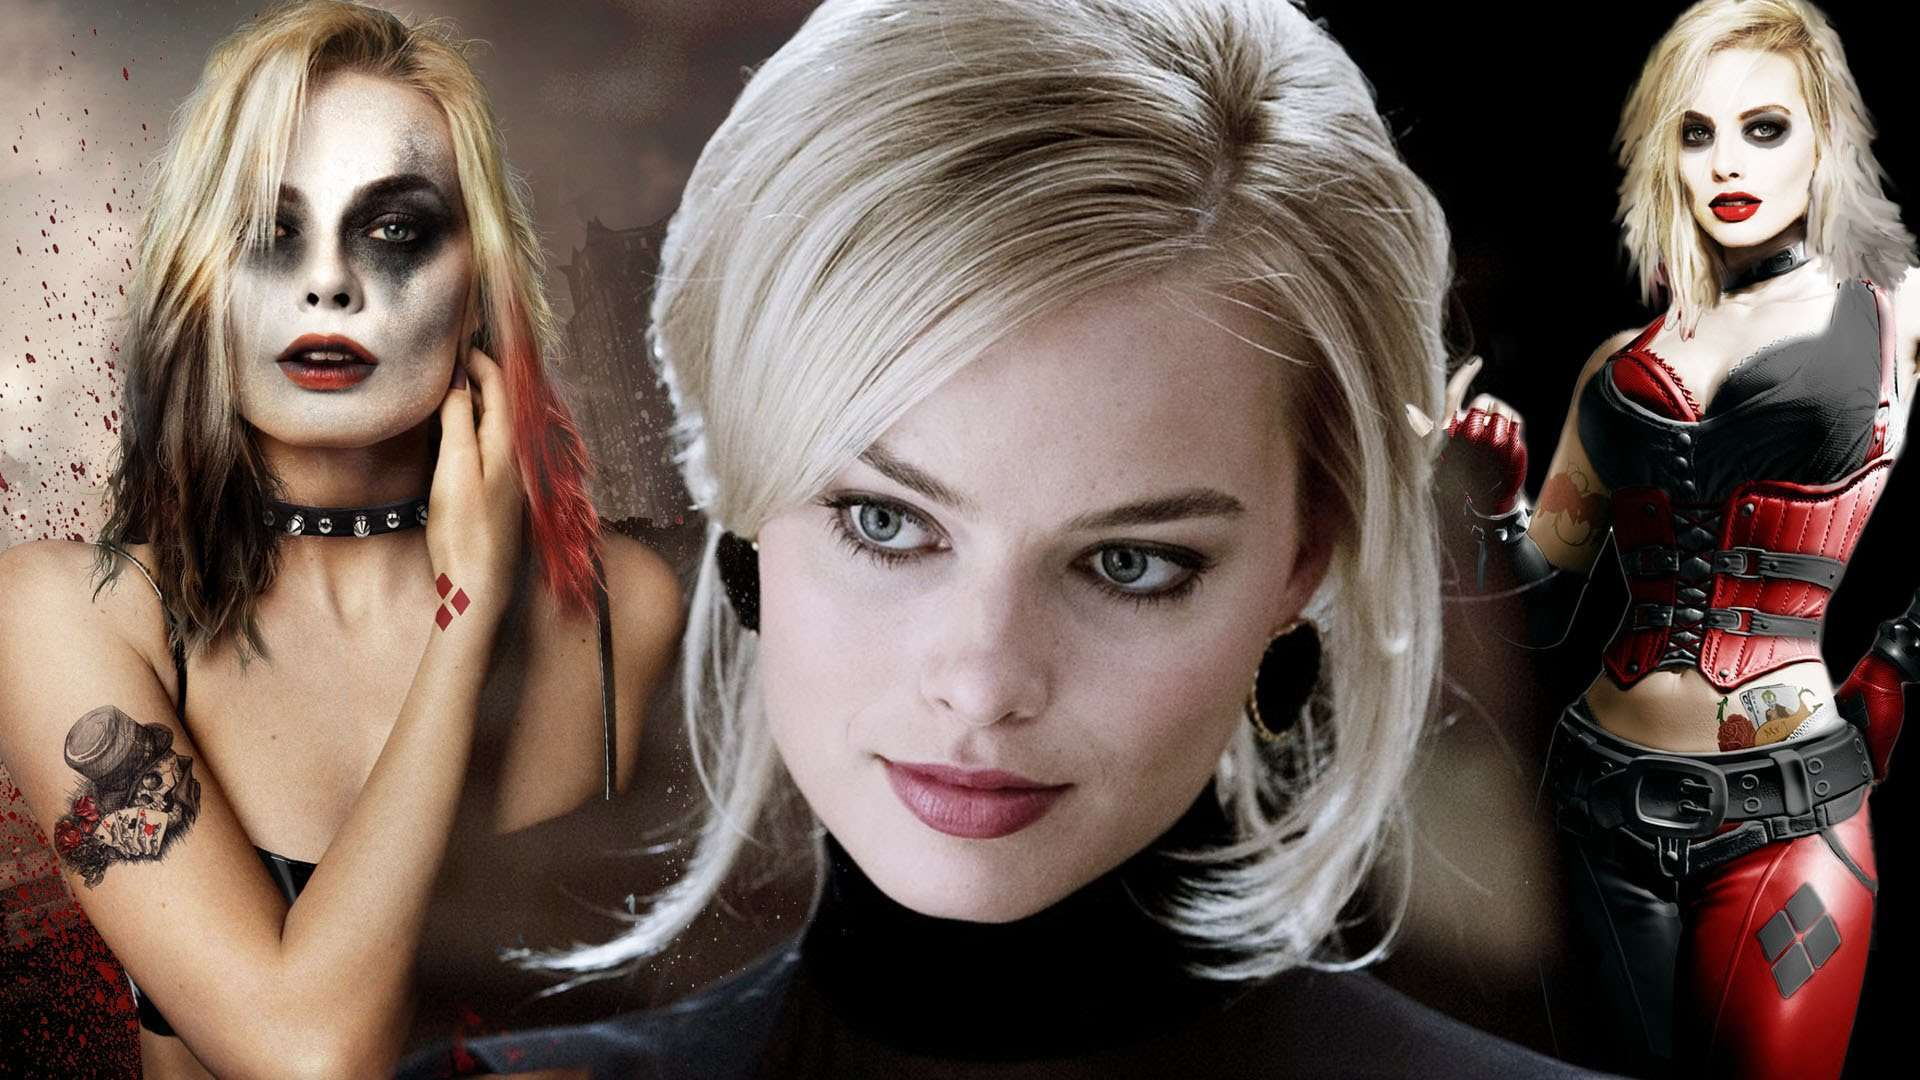 Harley quinn margot robbie clipart freeuse stock Harley Quinn Suicide Squad Wallpapers - WallpaperSafari freeuse stock